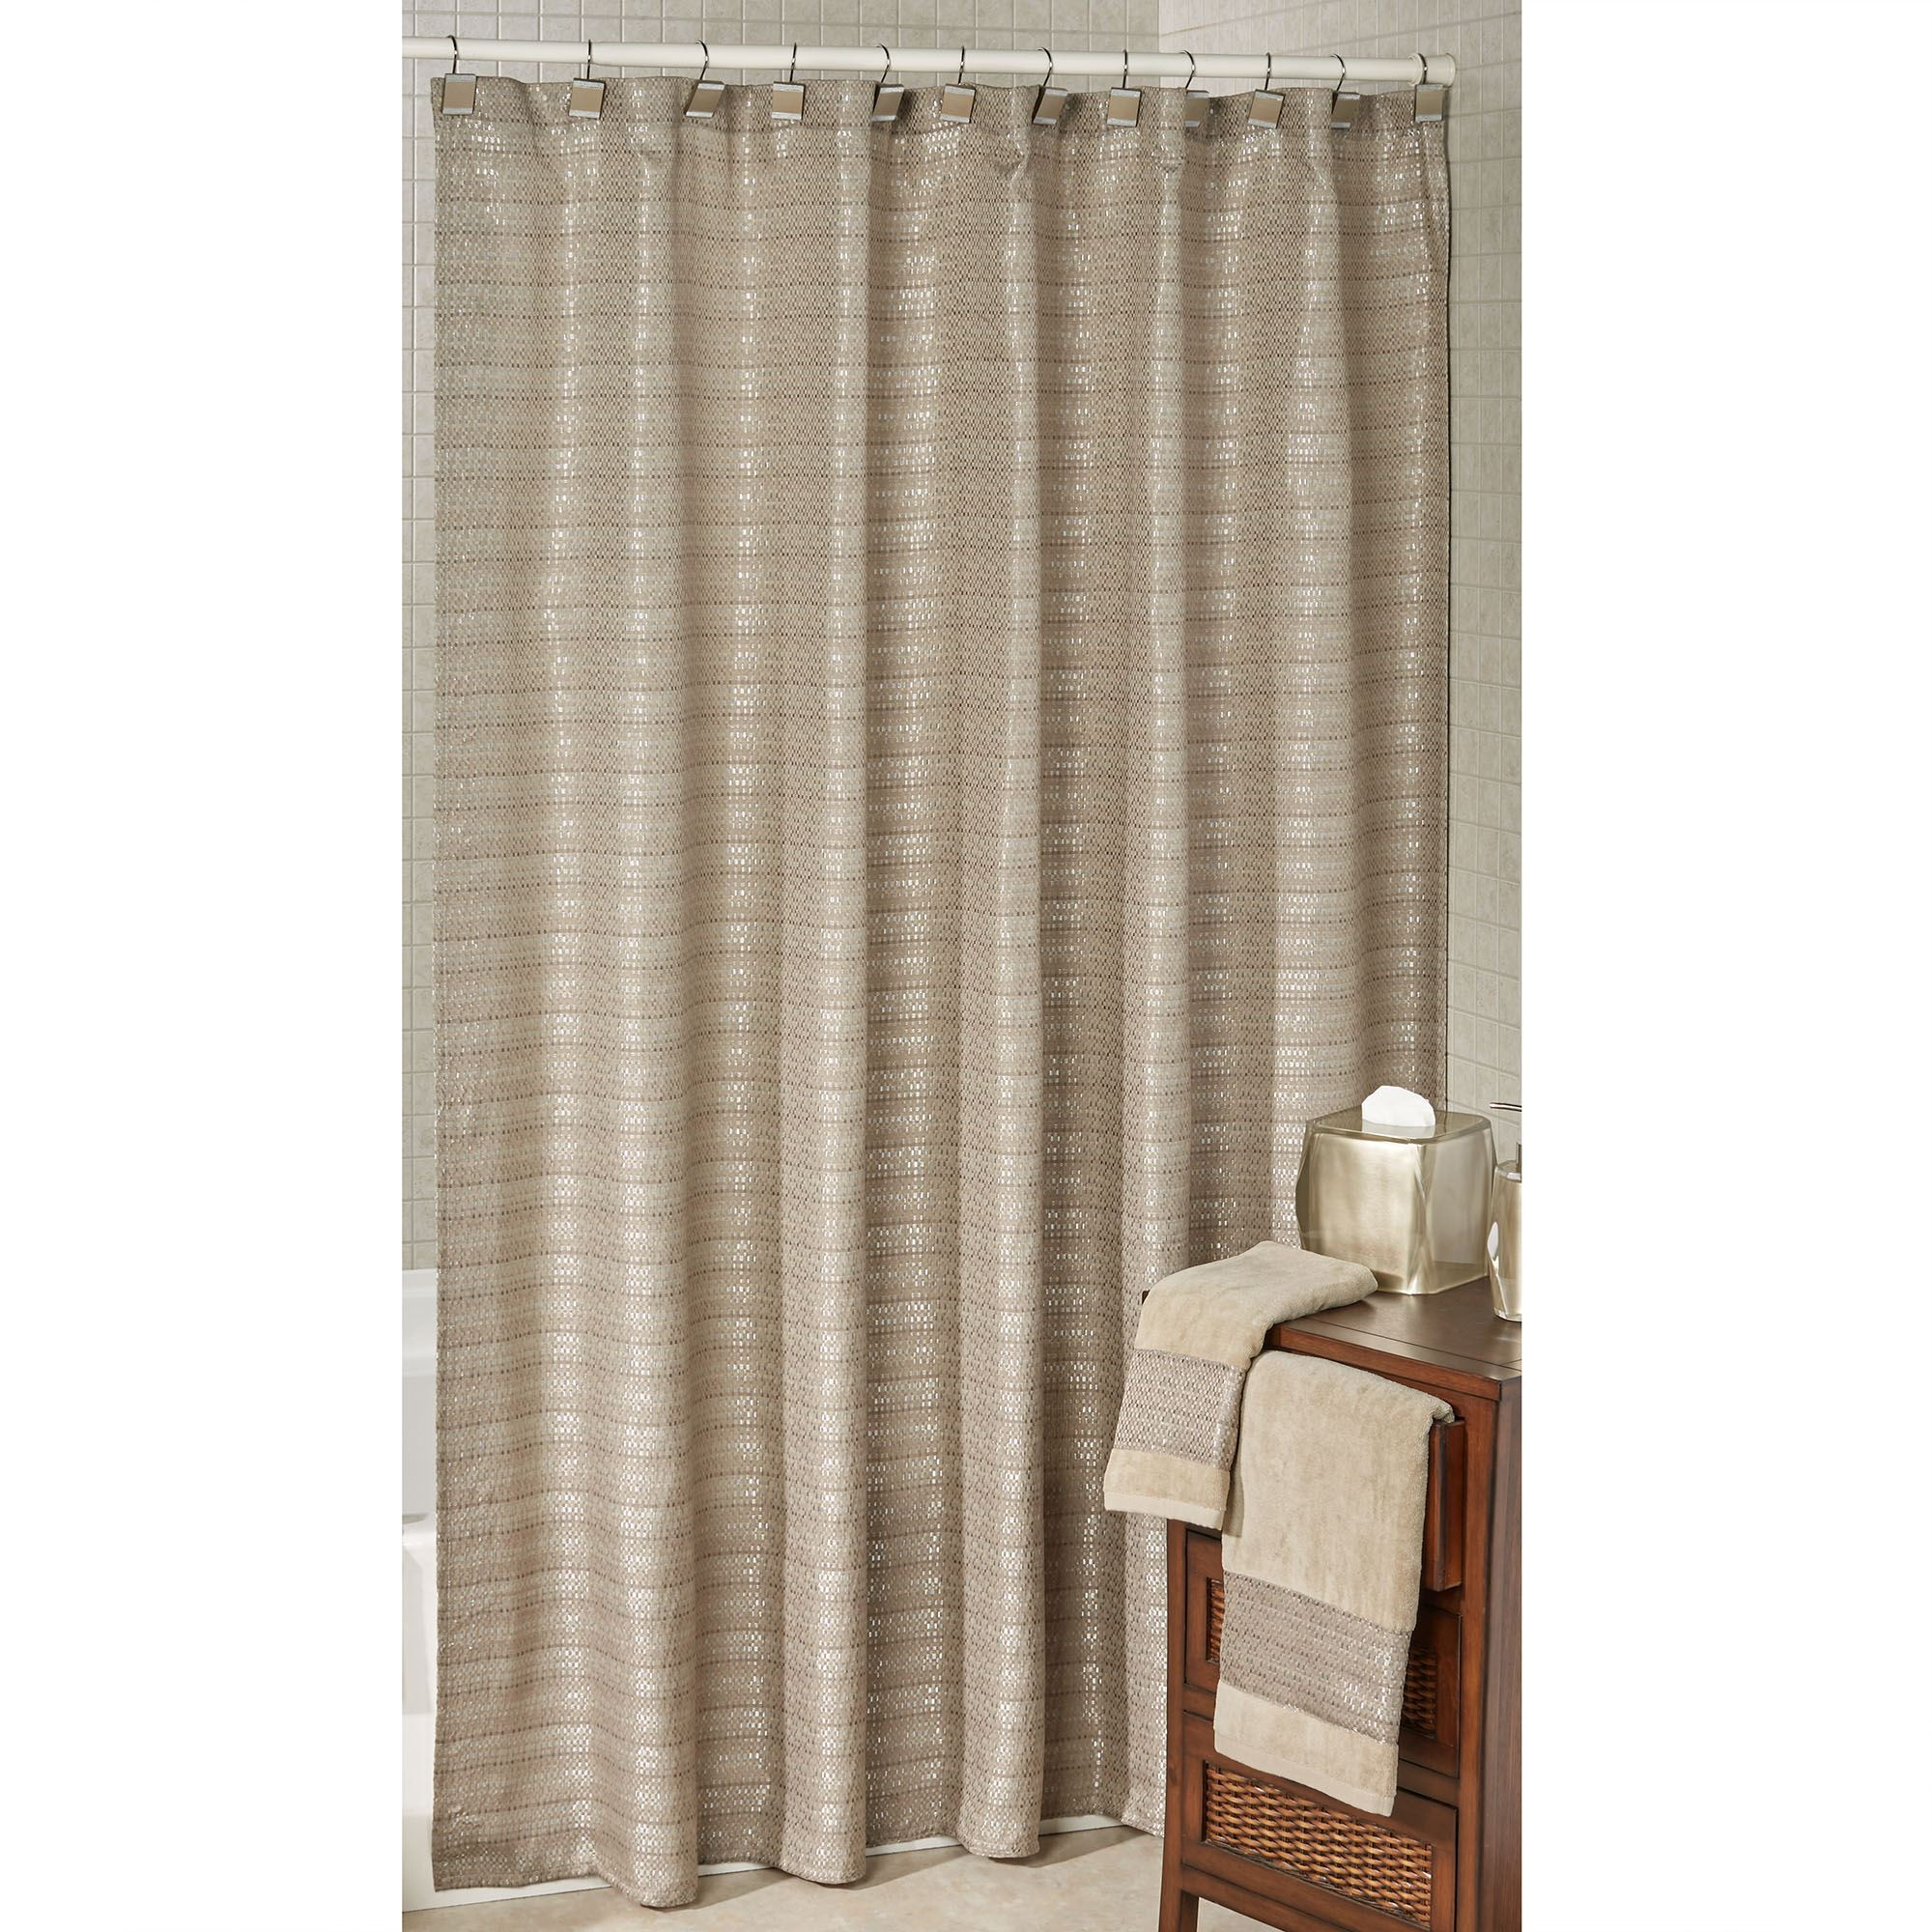 prd op pc hei jsp taupe curtains product shower fabric starlight set wid liner basketweave sharpen curtain